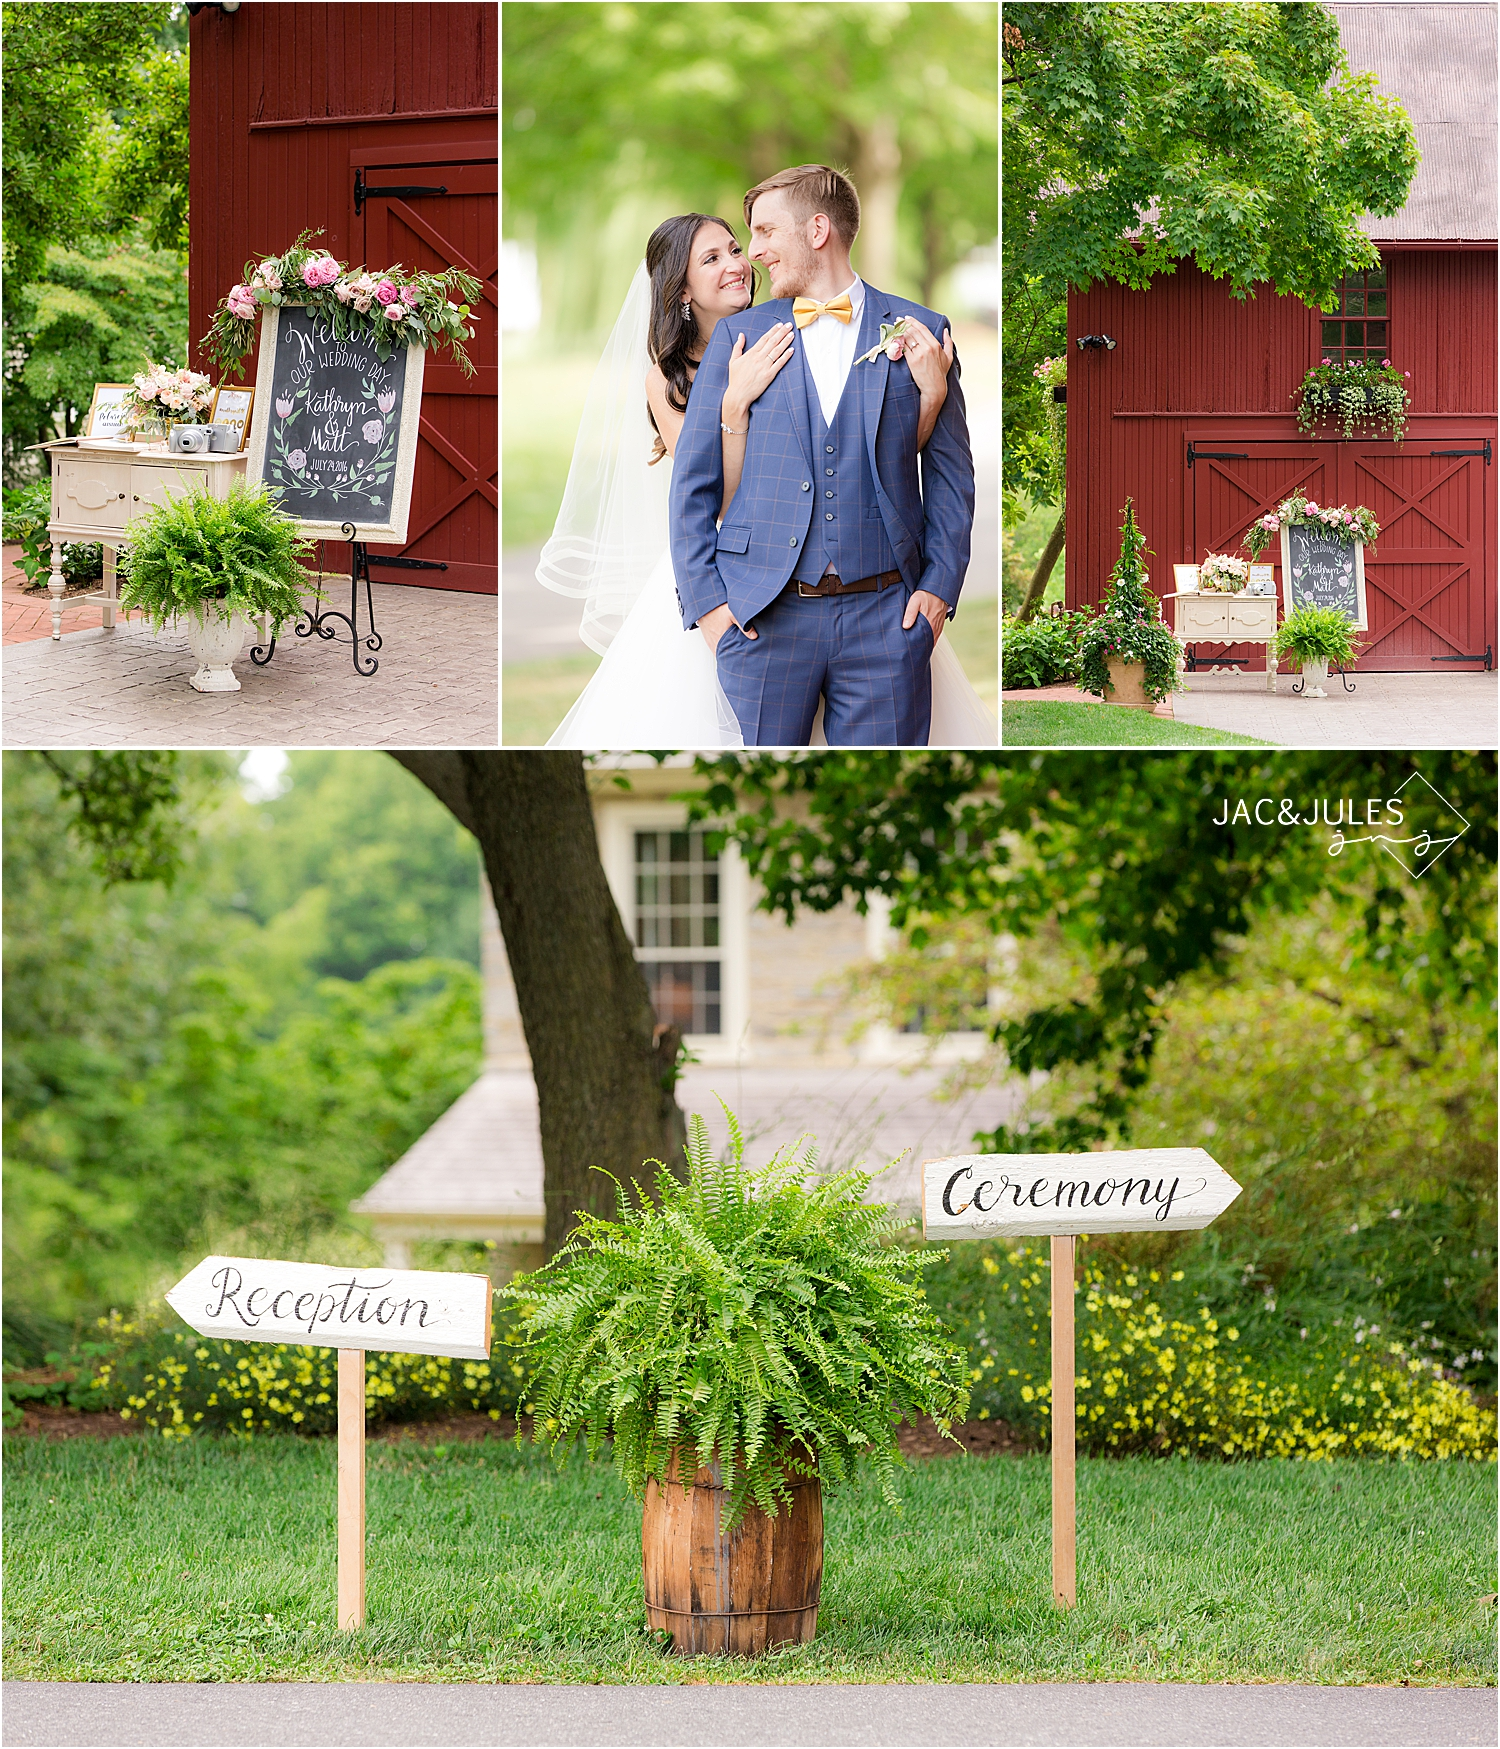 wedding details at farm at eagles ridge in lancaster PA